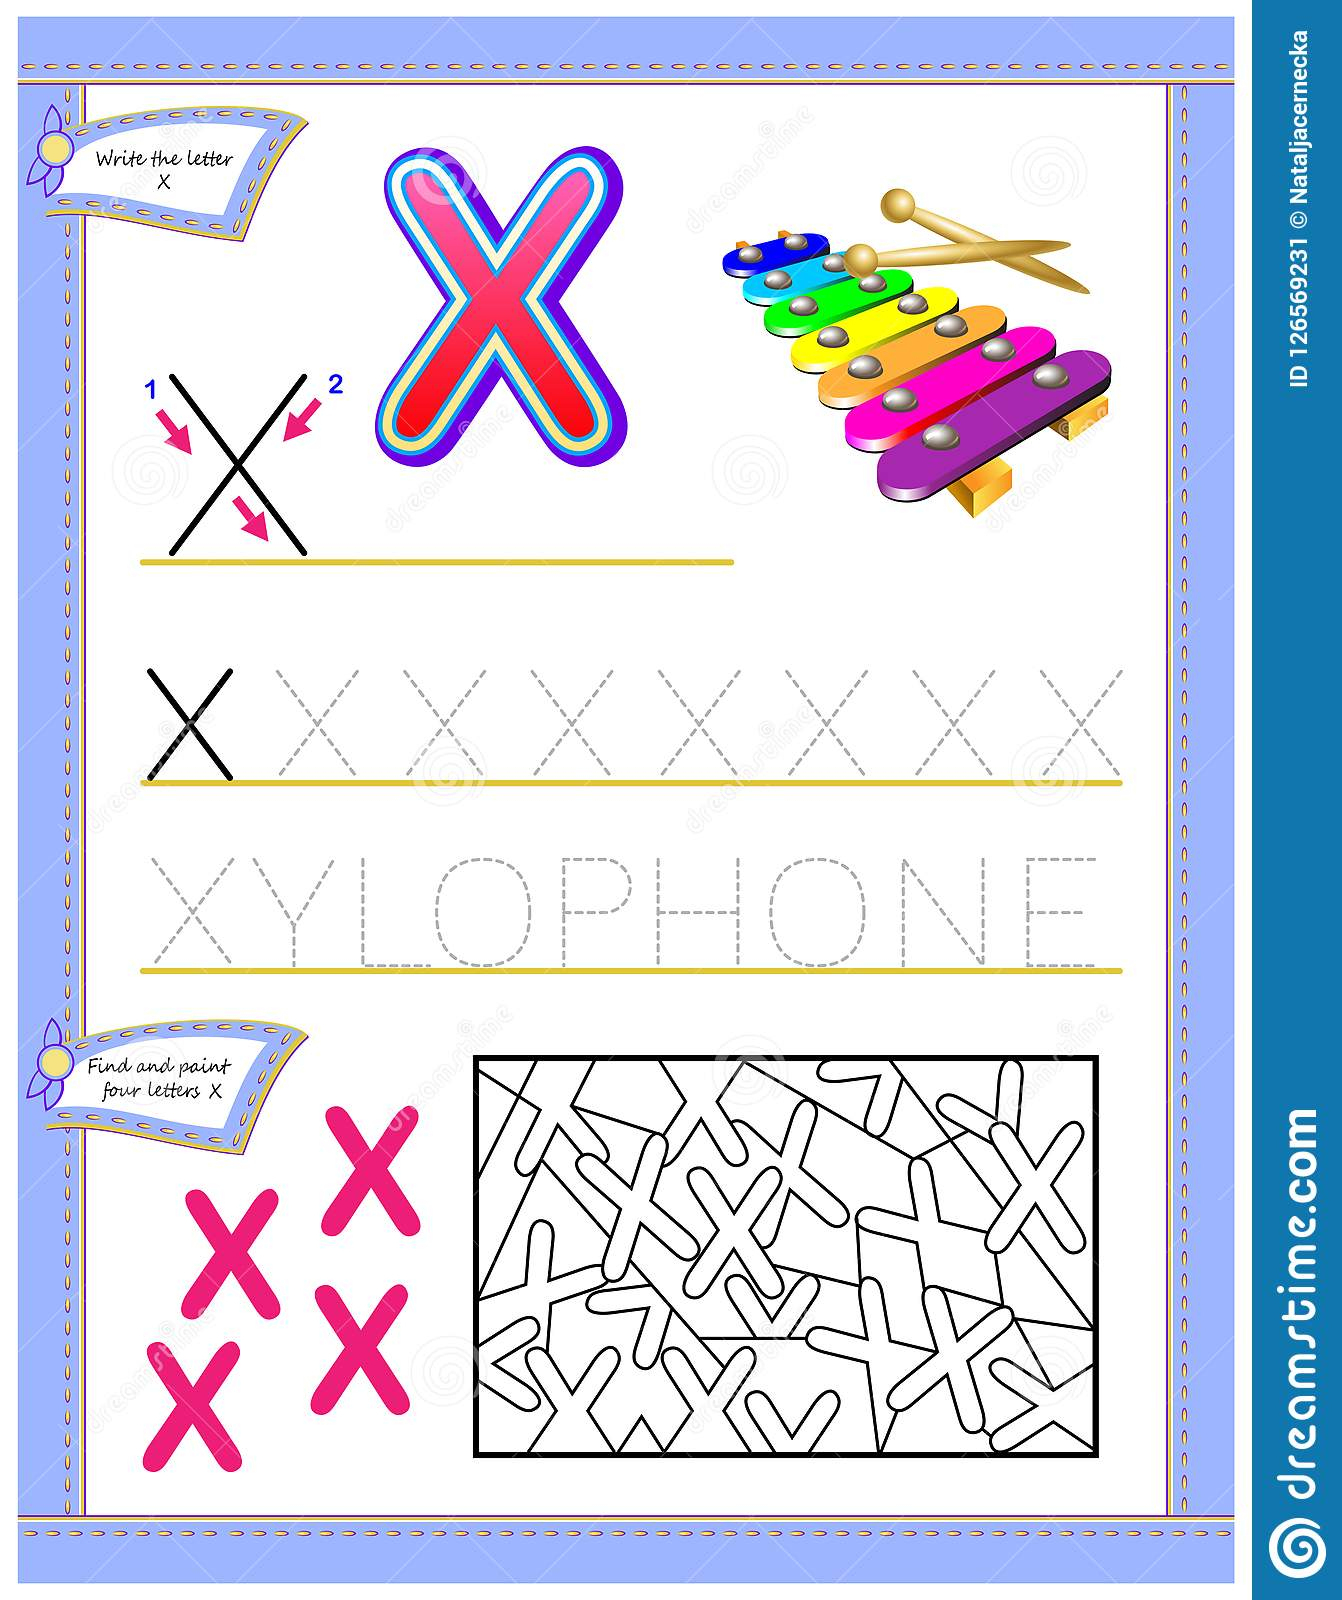 Worksheet For Kids With Letter X For Study English Alphabet. Logic - X Puzzle Worksheet